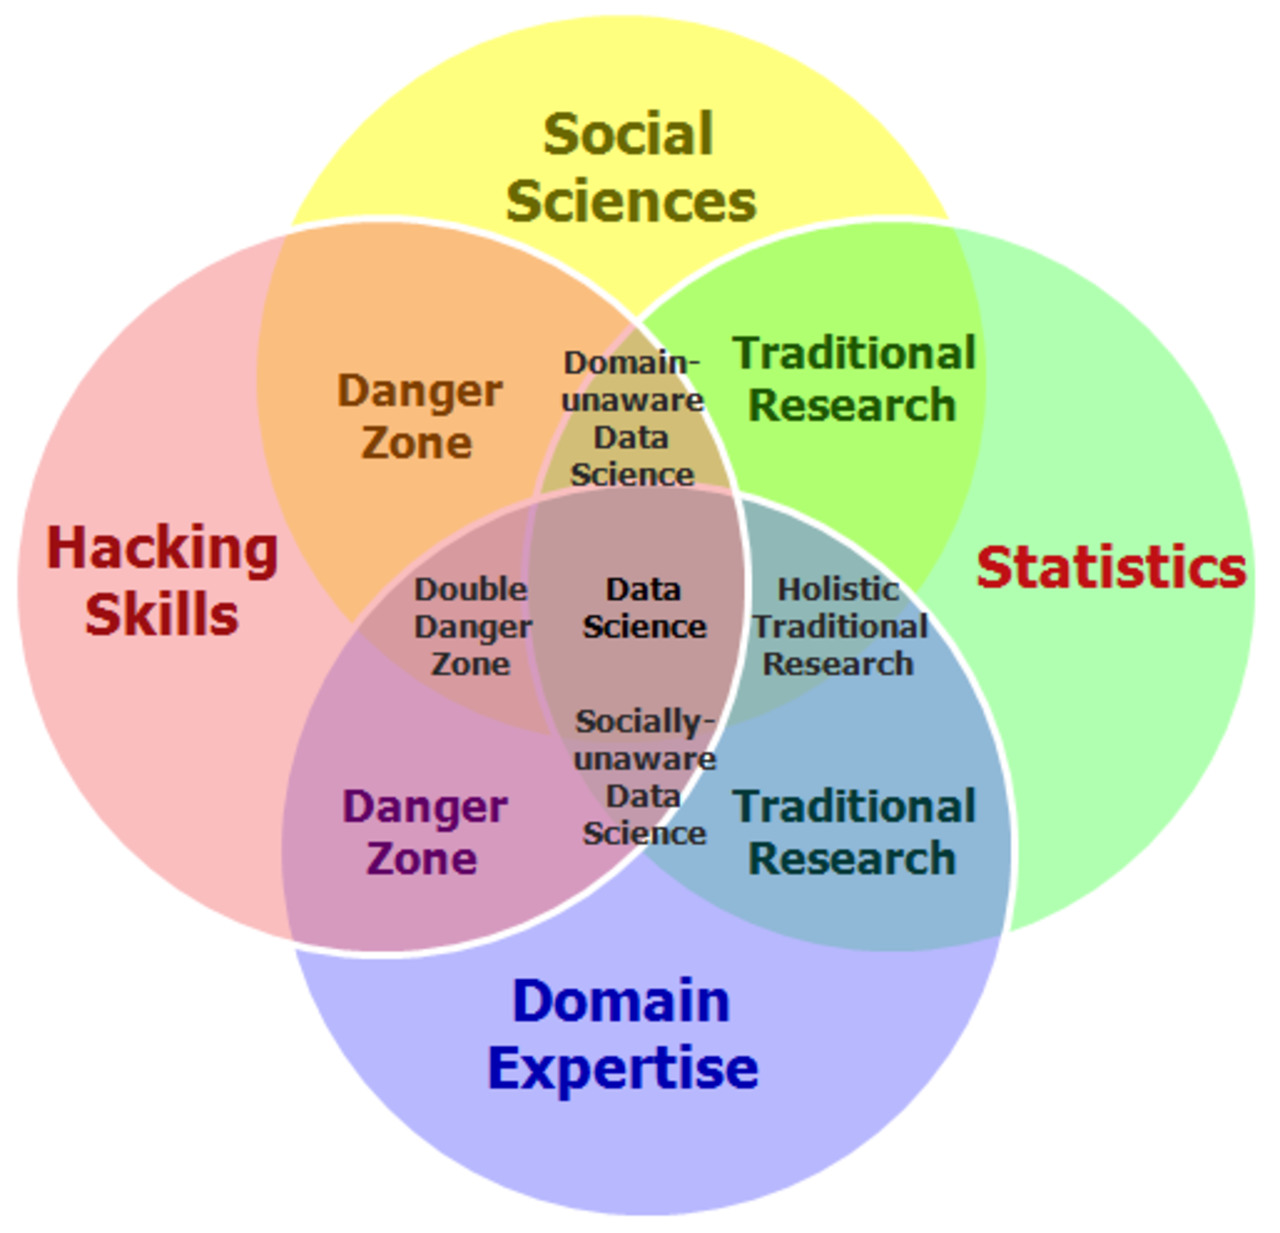 Nxtstop1 see datascience venn diagram expanded into social nxtstop1 see datascience venn diagram expanded into social science datascienceassn behavioral analytics t pooptronica Image collections